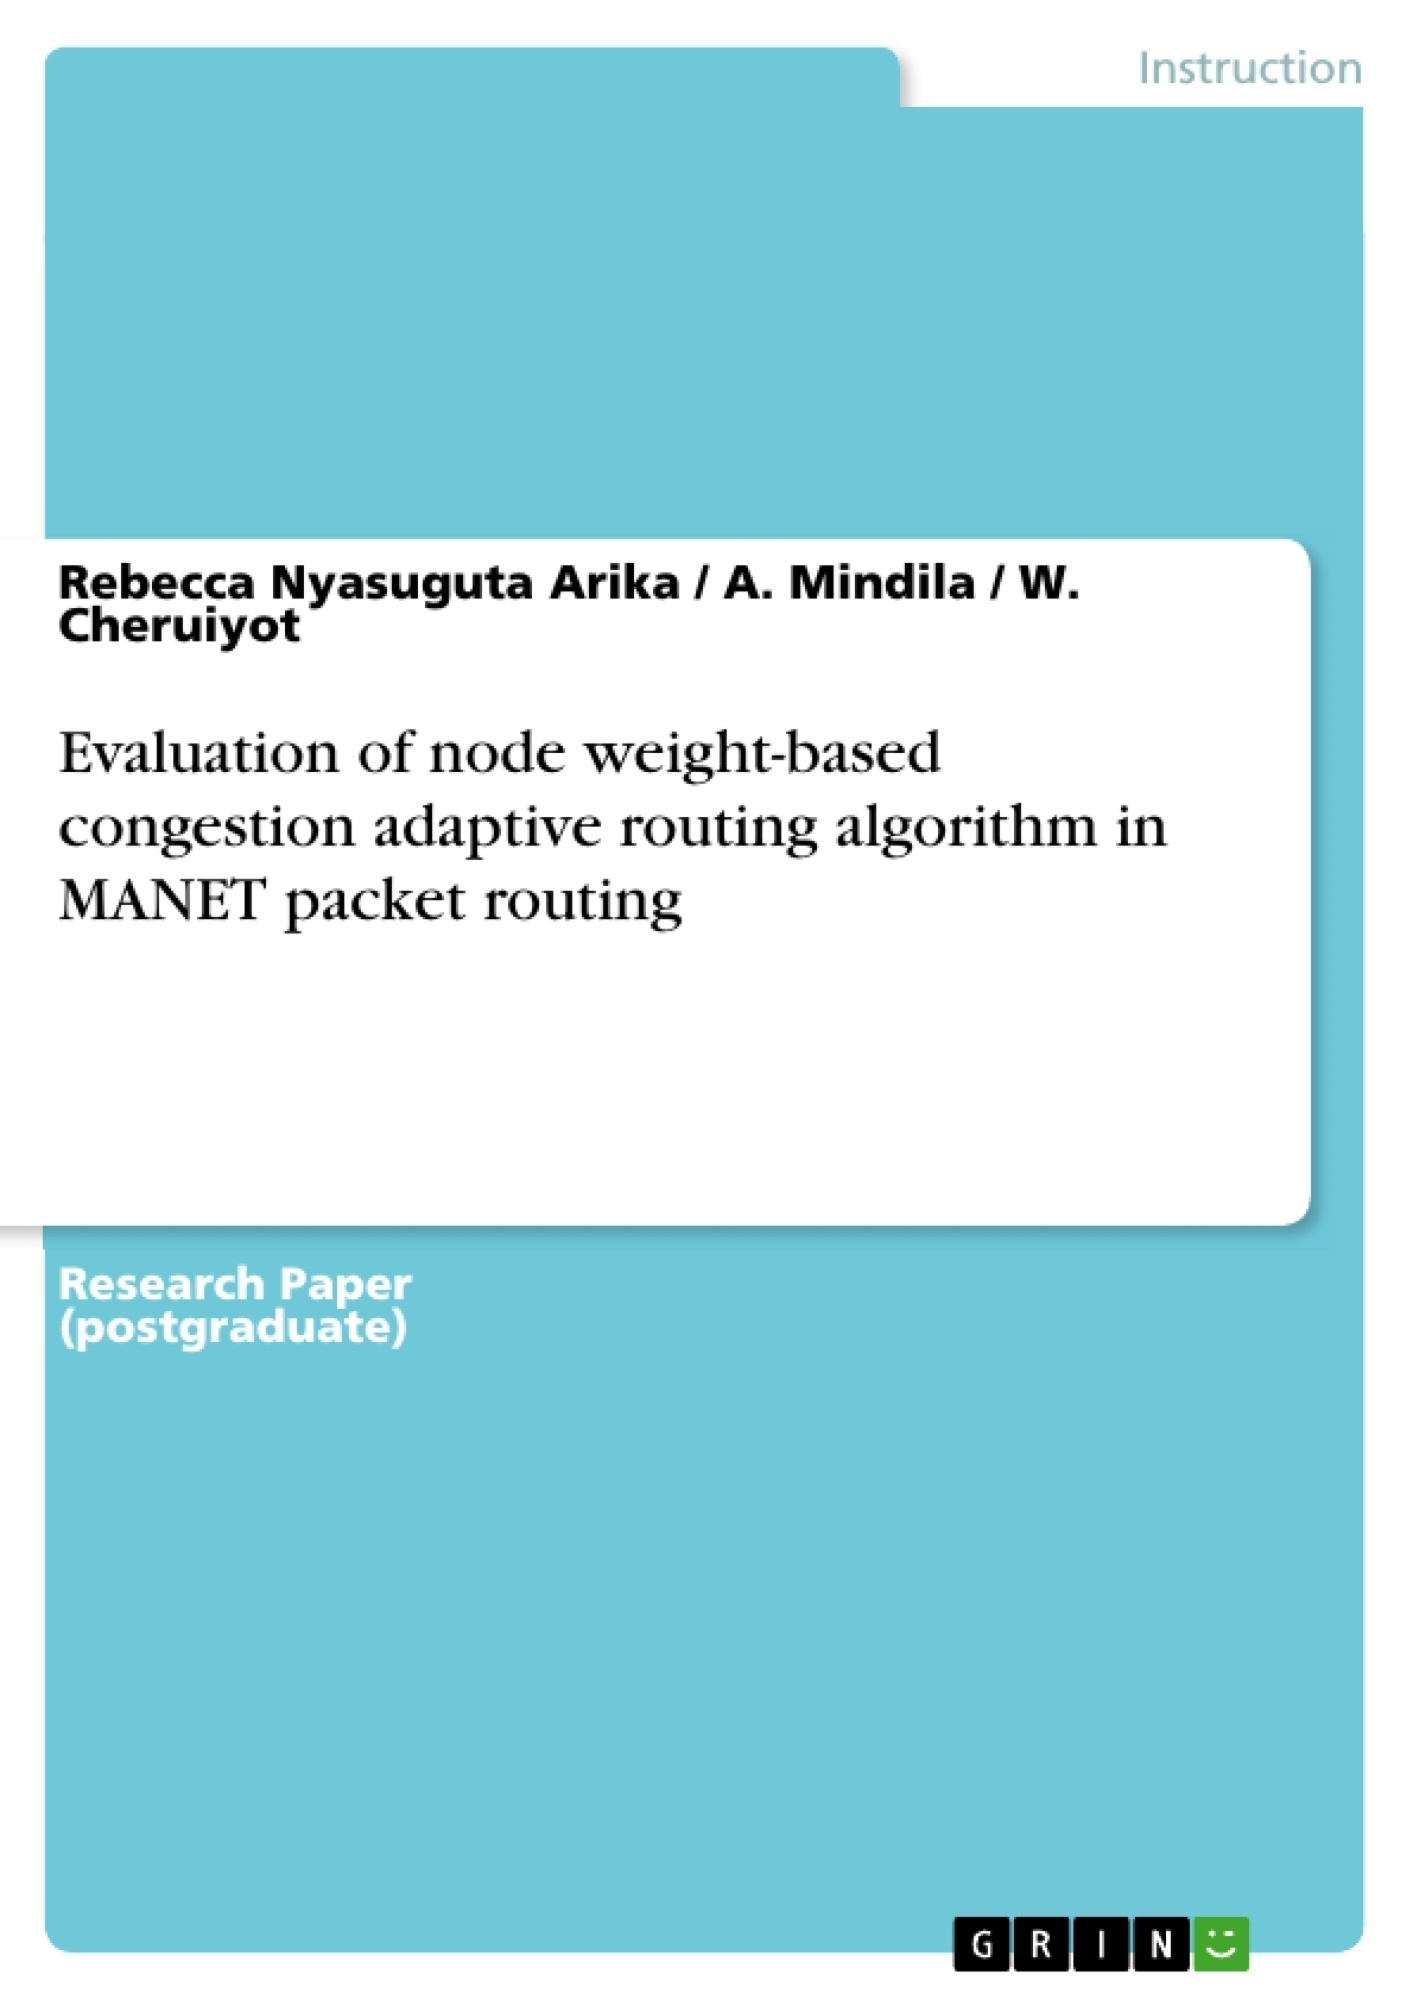 Title: Evaluation of node weight-based congestion adaptive routing algorithm in MANET packet routing